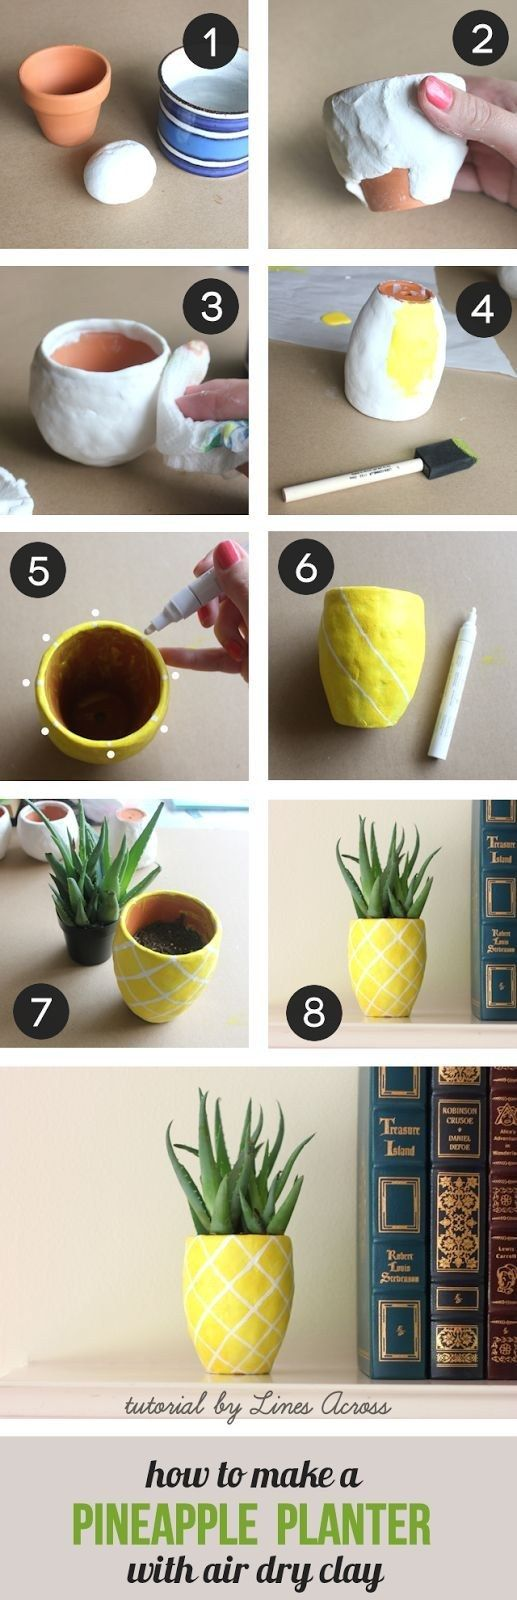 DIY Cute Succulent Pineapple Planter